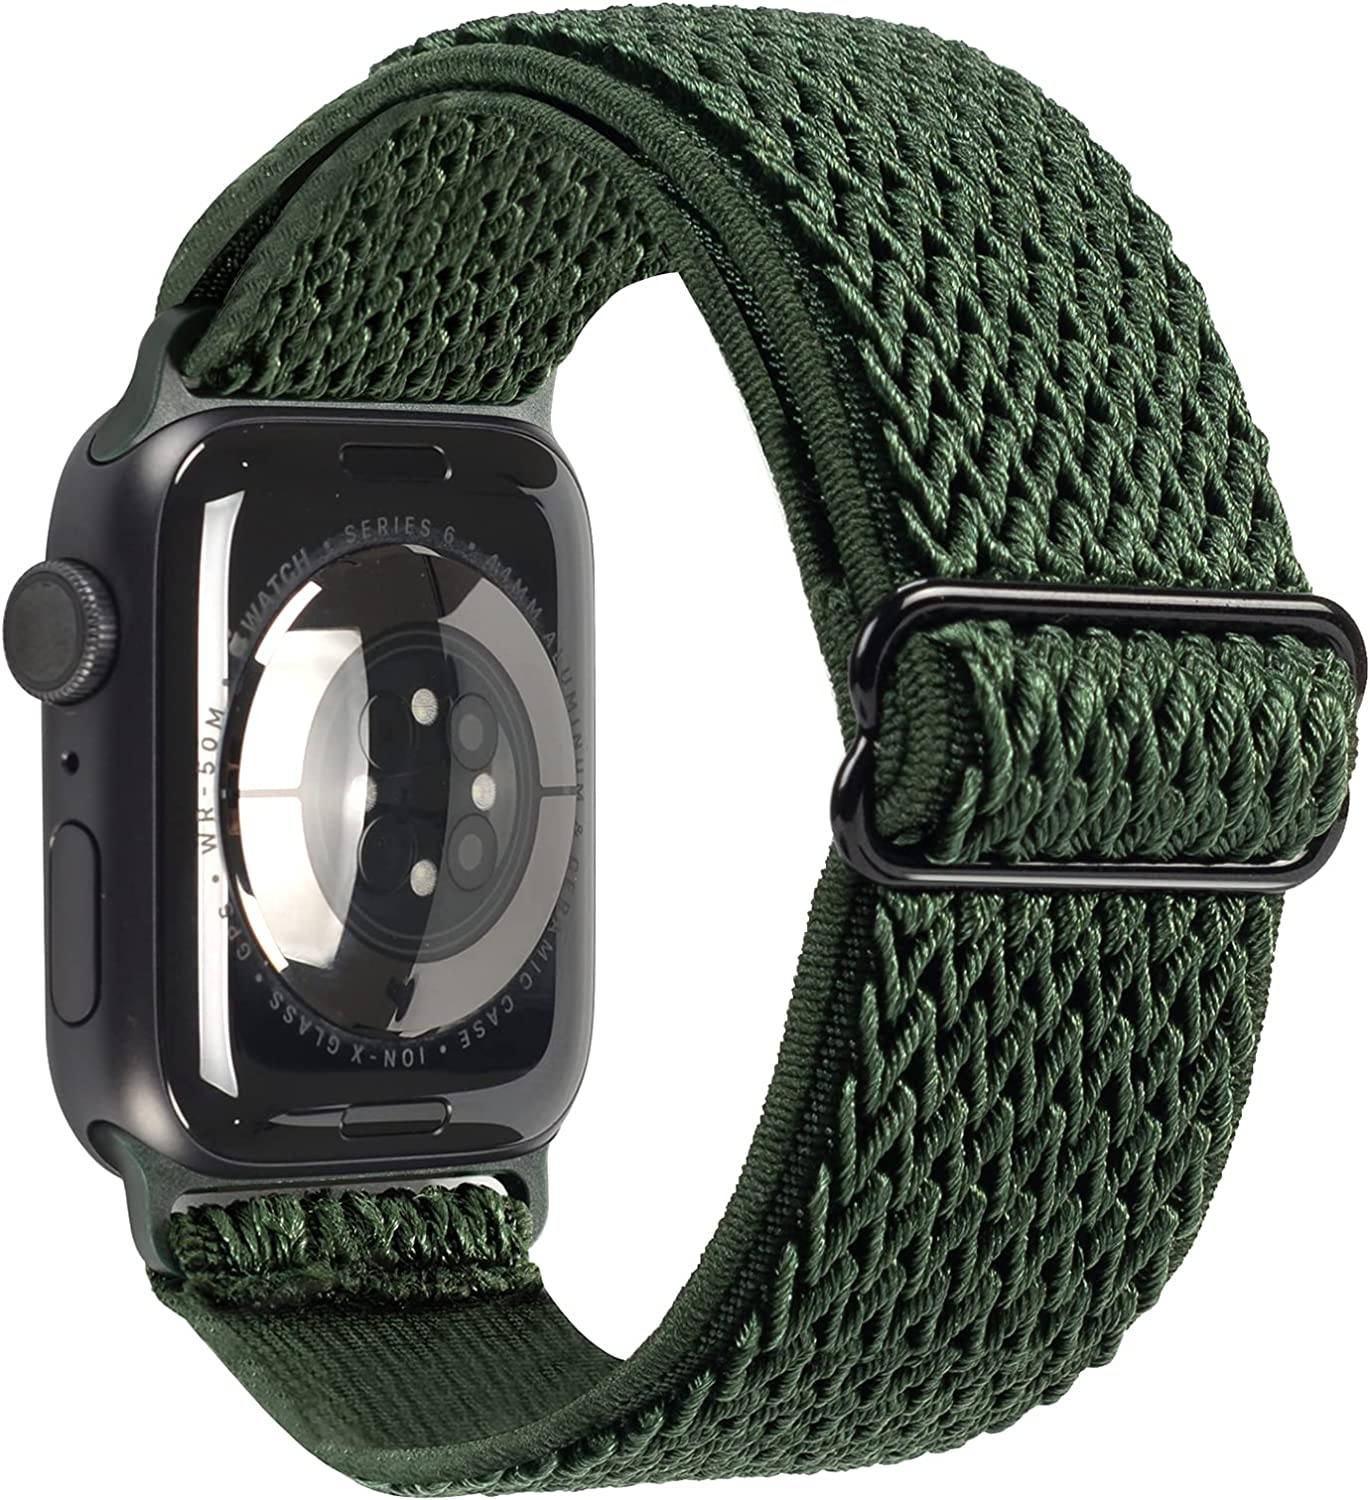 Stretchy Sport Loop Compatible with Apple Watch Bands 38mm 40mm, Women Men Nylon Braided Elastic Adjustable Replacement Wristband for iWatch Series SE 6 5 4 3 2 1